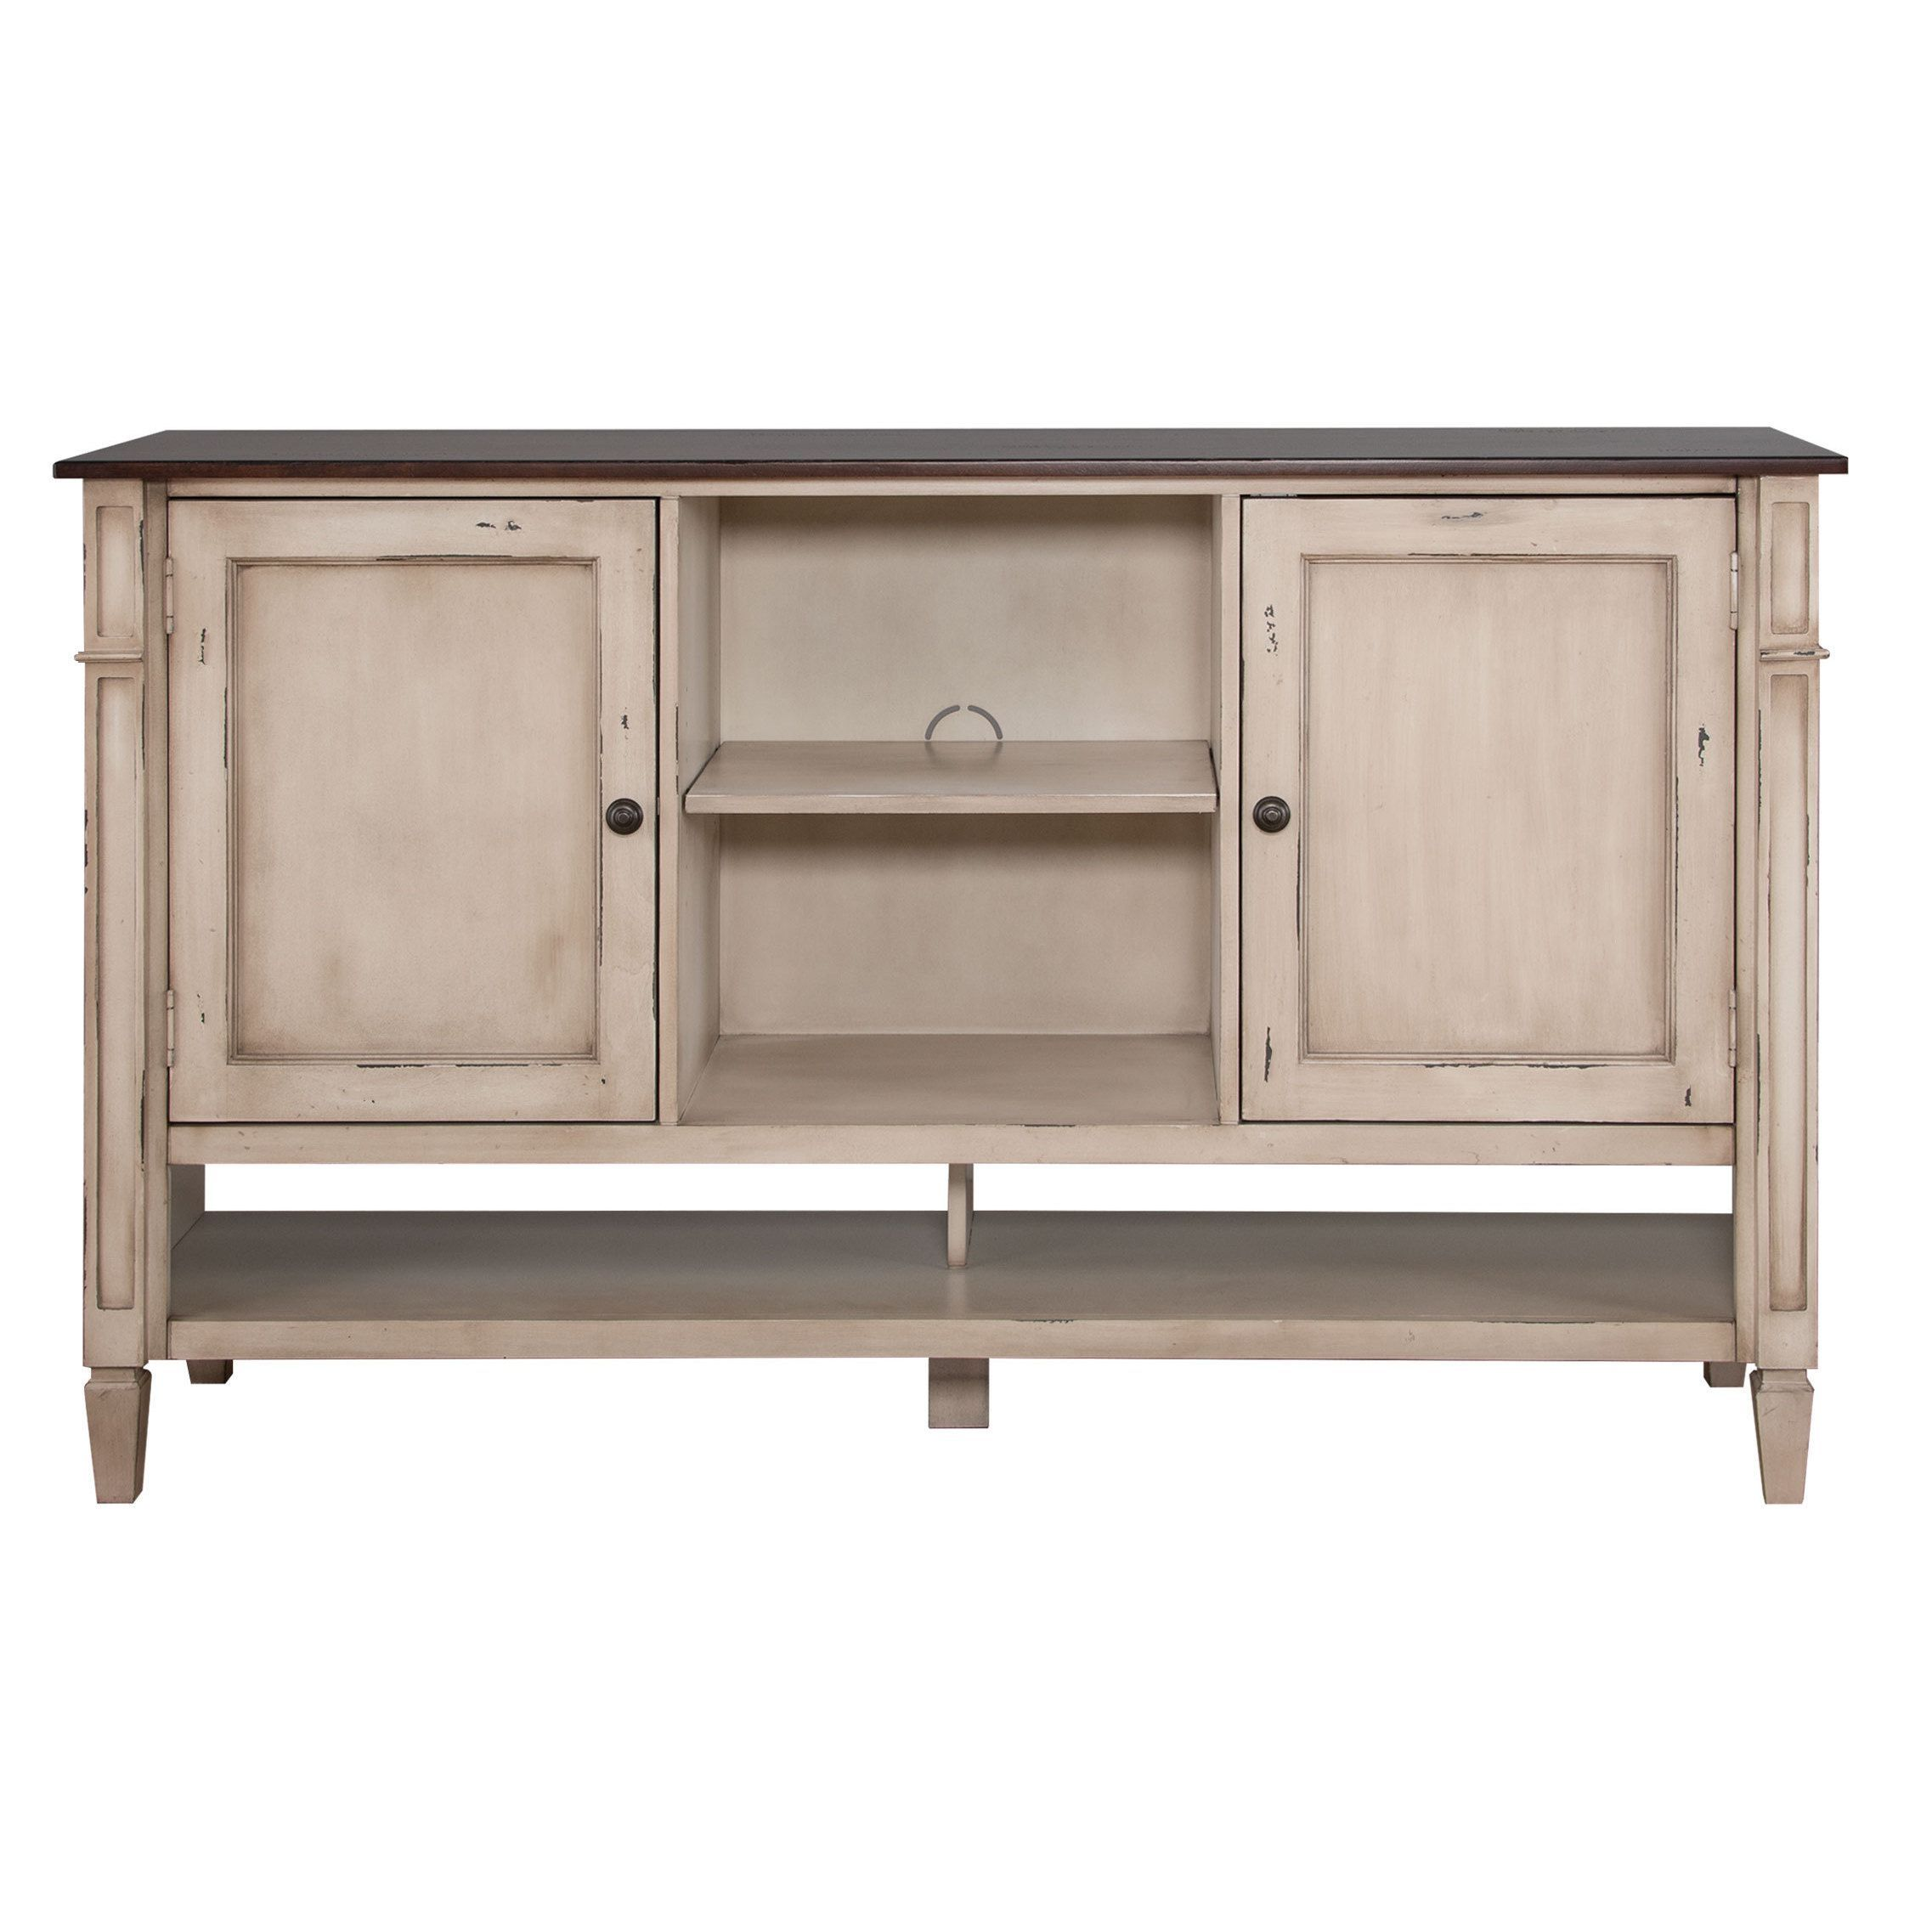 The Baker Deluxe Living Room Storage Console is made with hardwood ...